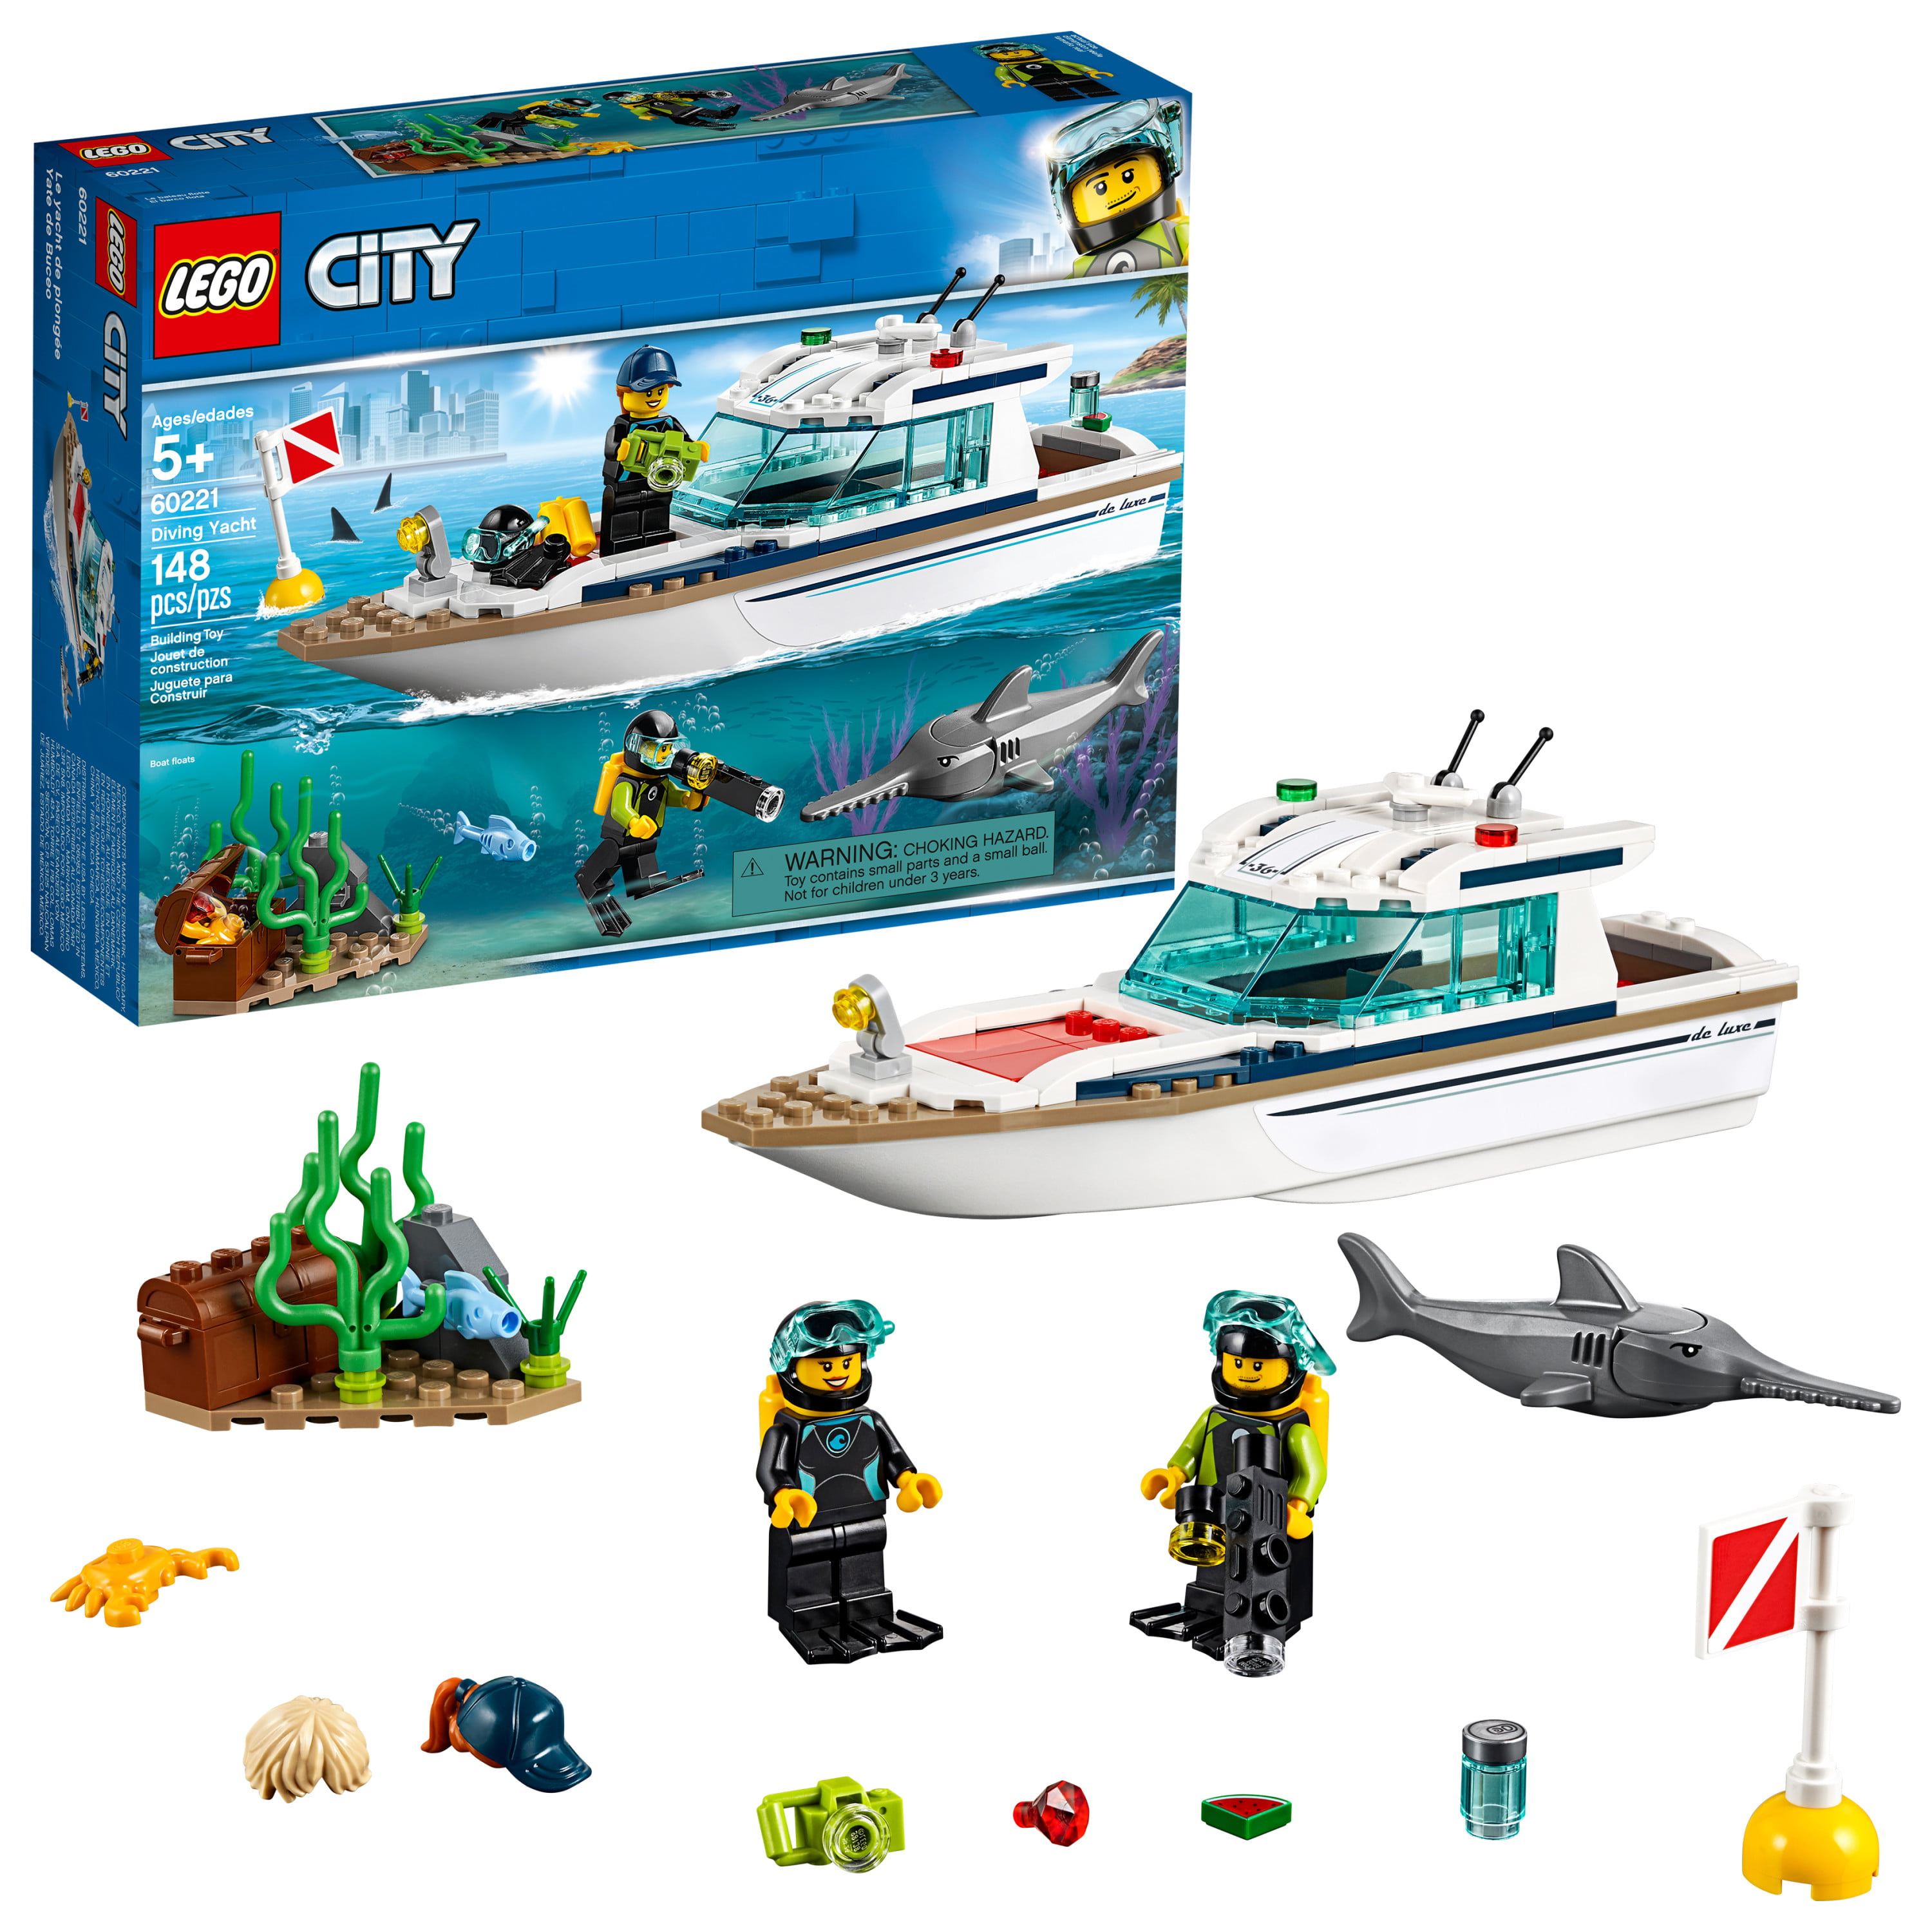 Christmas Toys 2020-22 From New York City Kiddie City Toys In The Mall LEGO City Great Vehicles Diving Yacht 60221 Ship Building Toy and